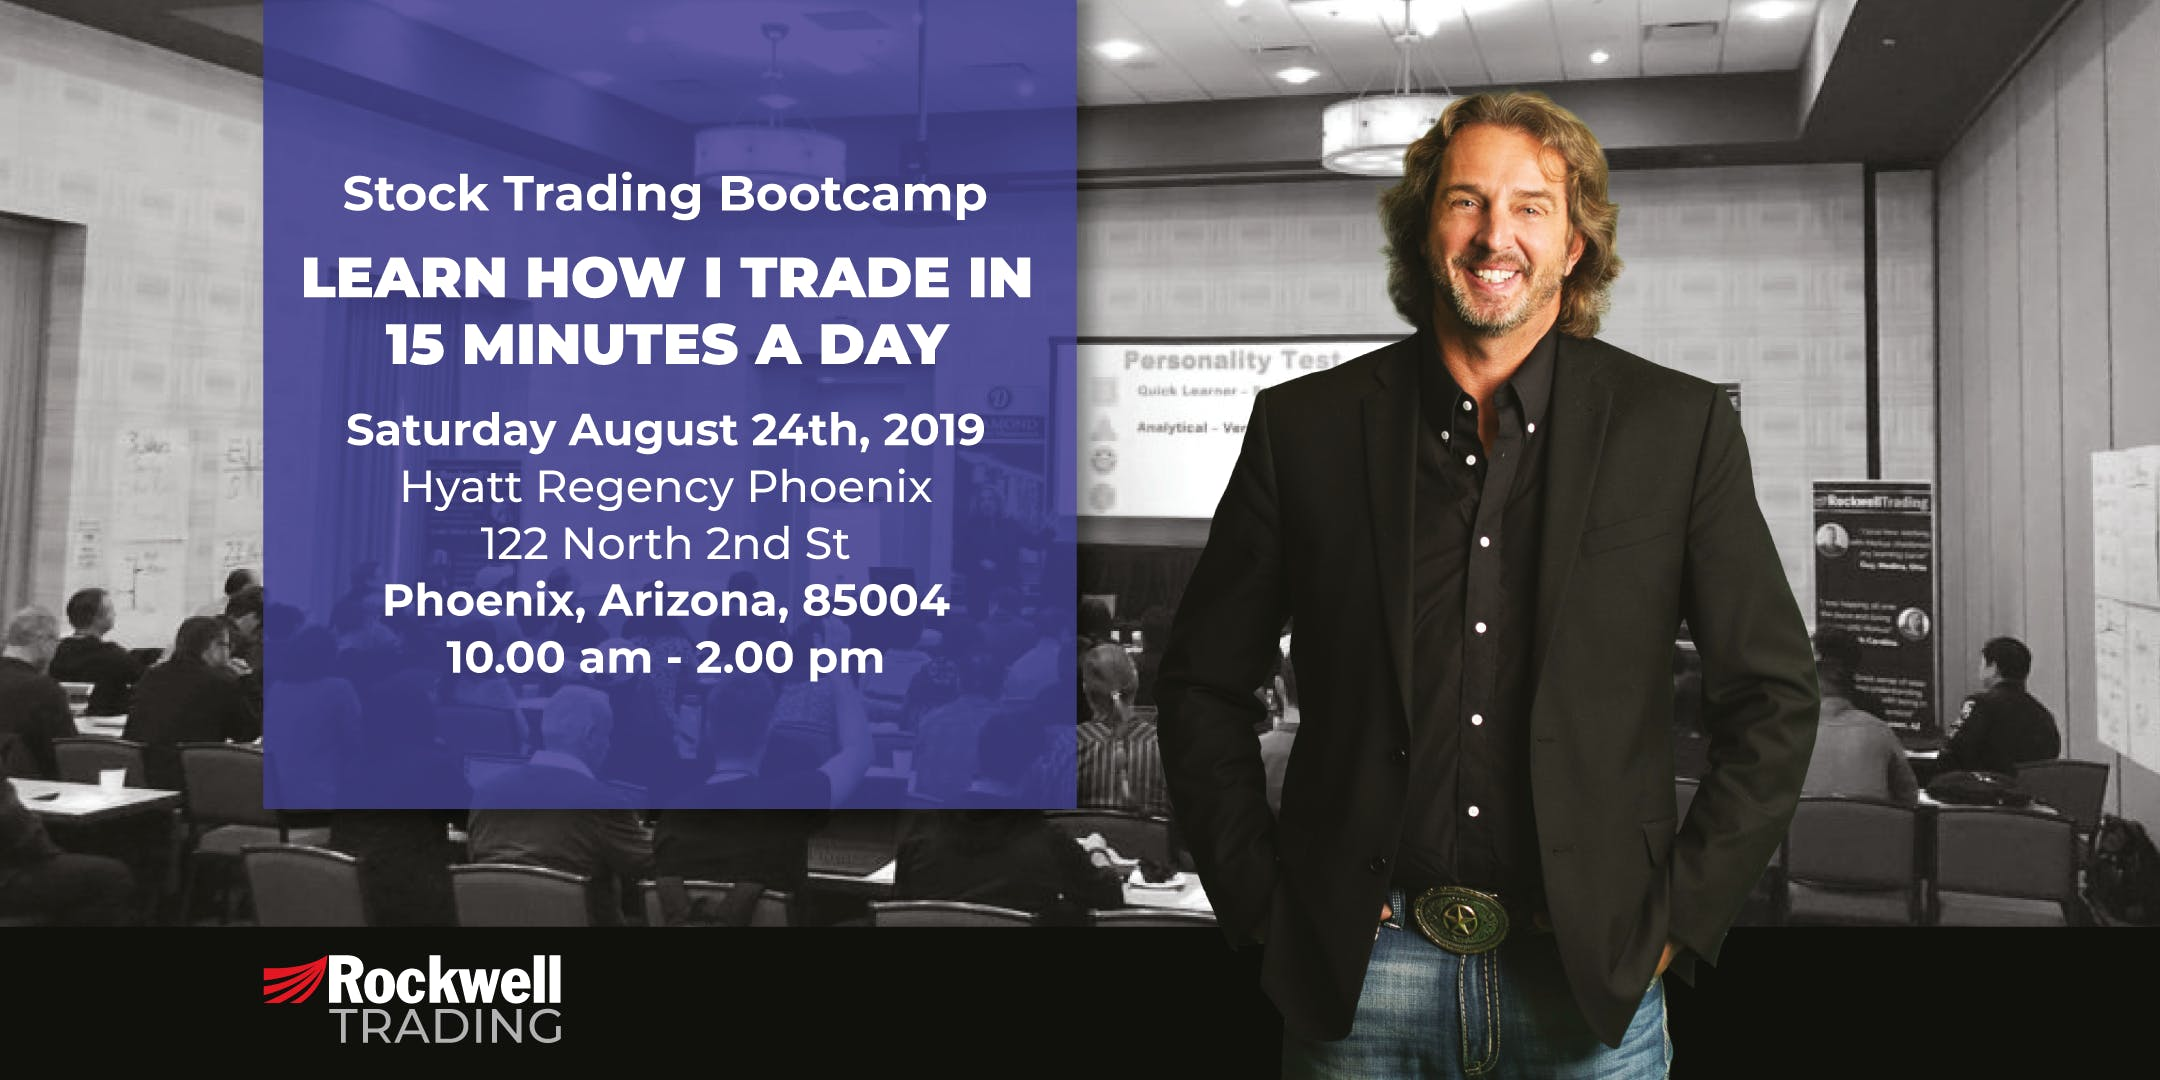 Rockwell Stock Trading Bootcamp - PHOENIX, August 24th